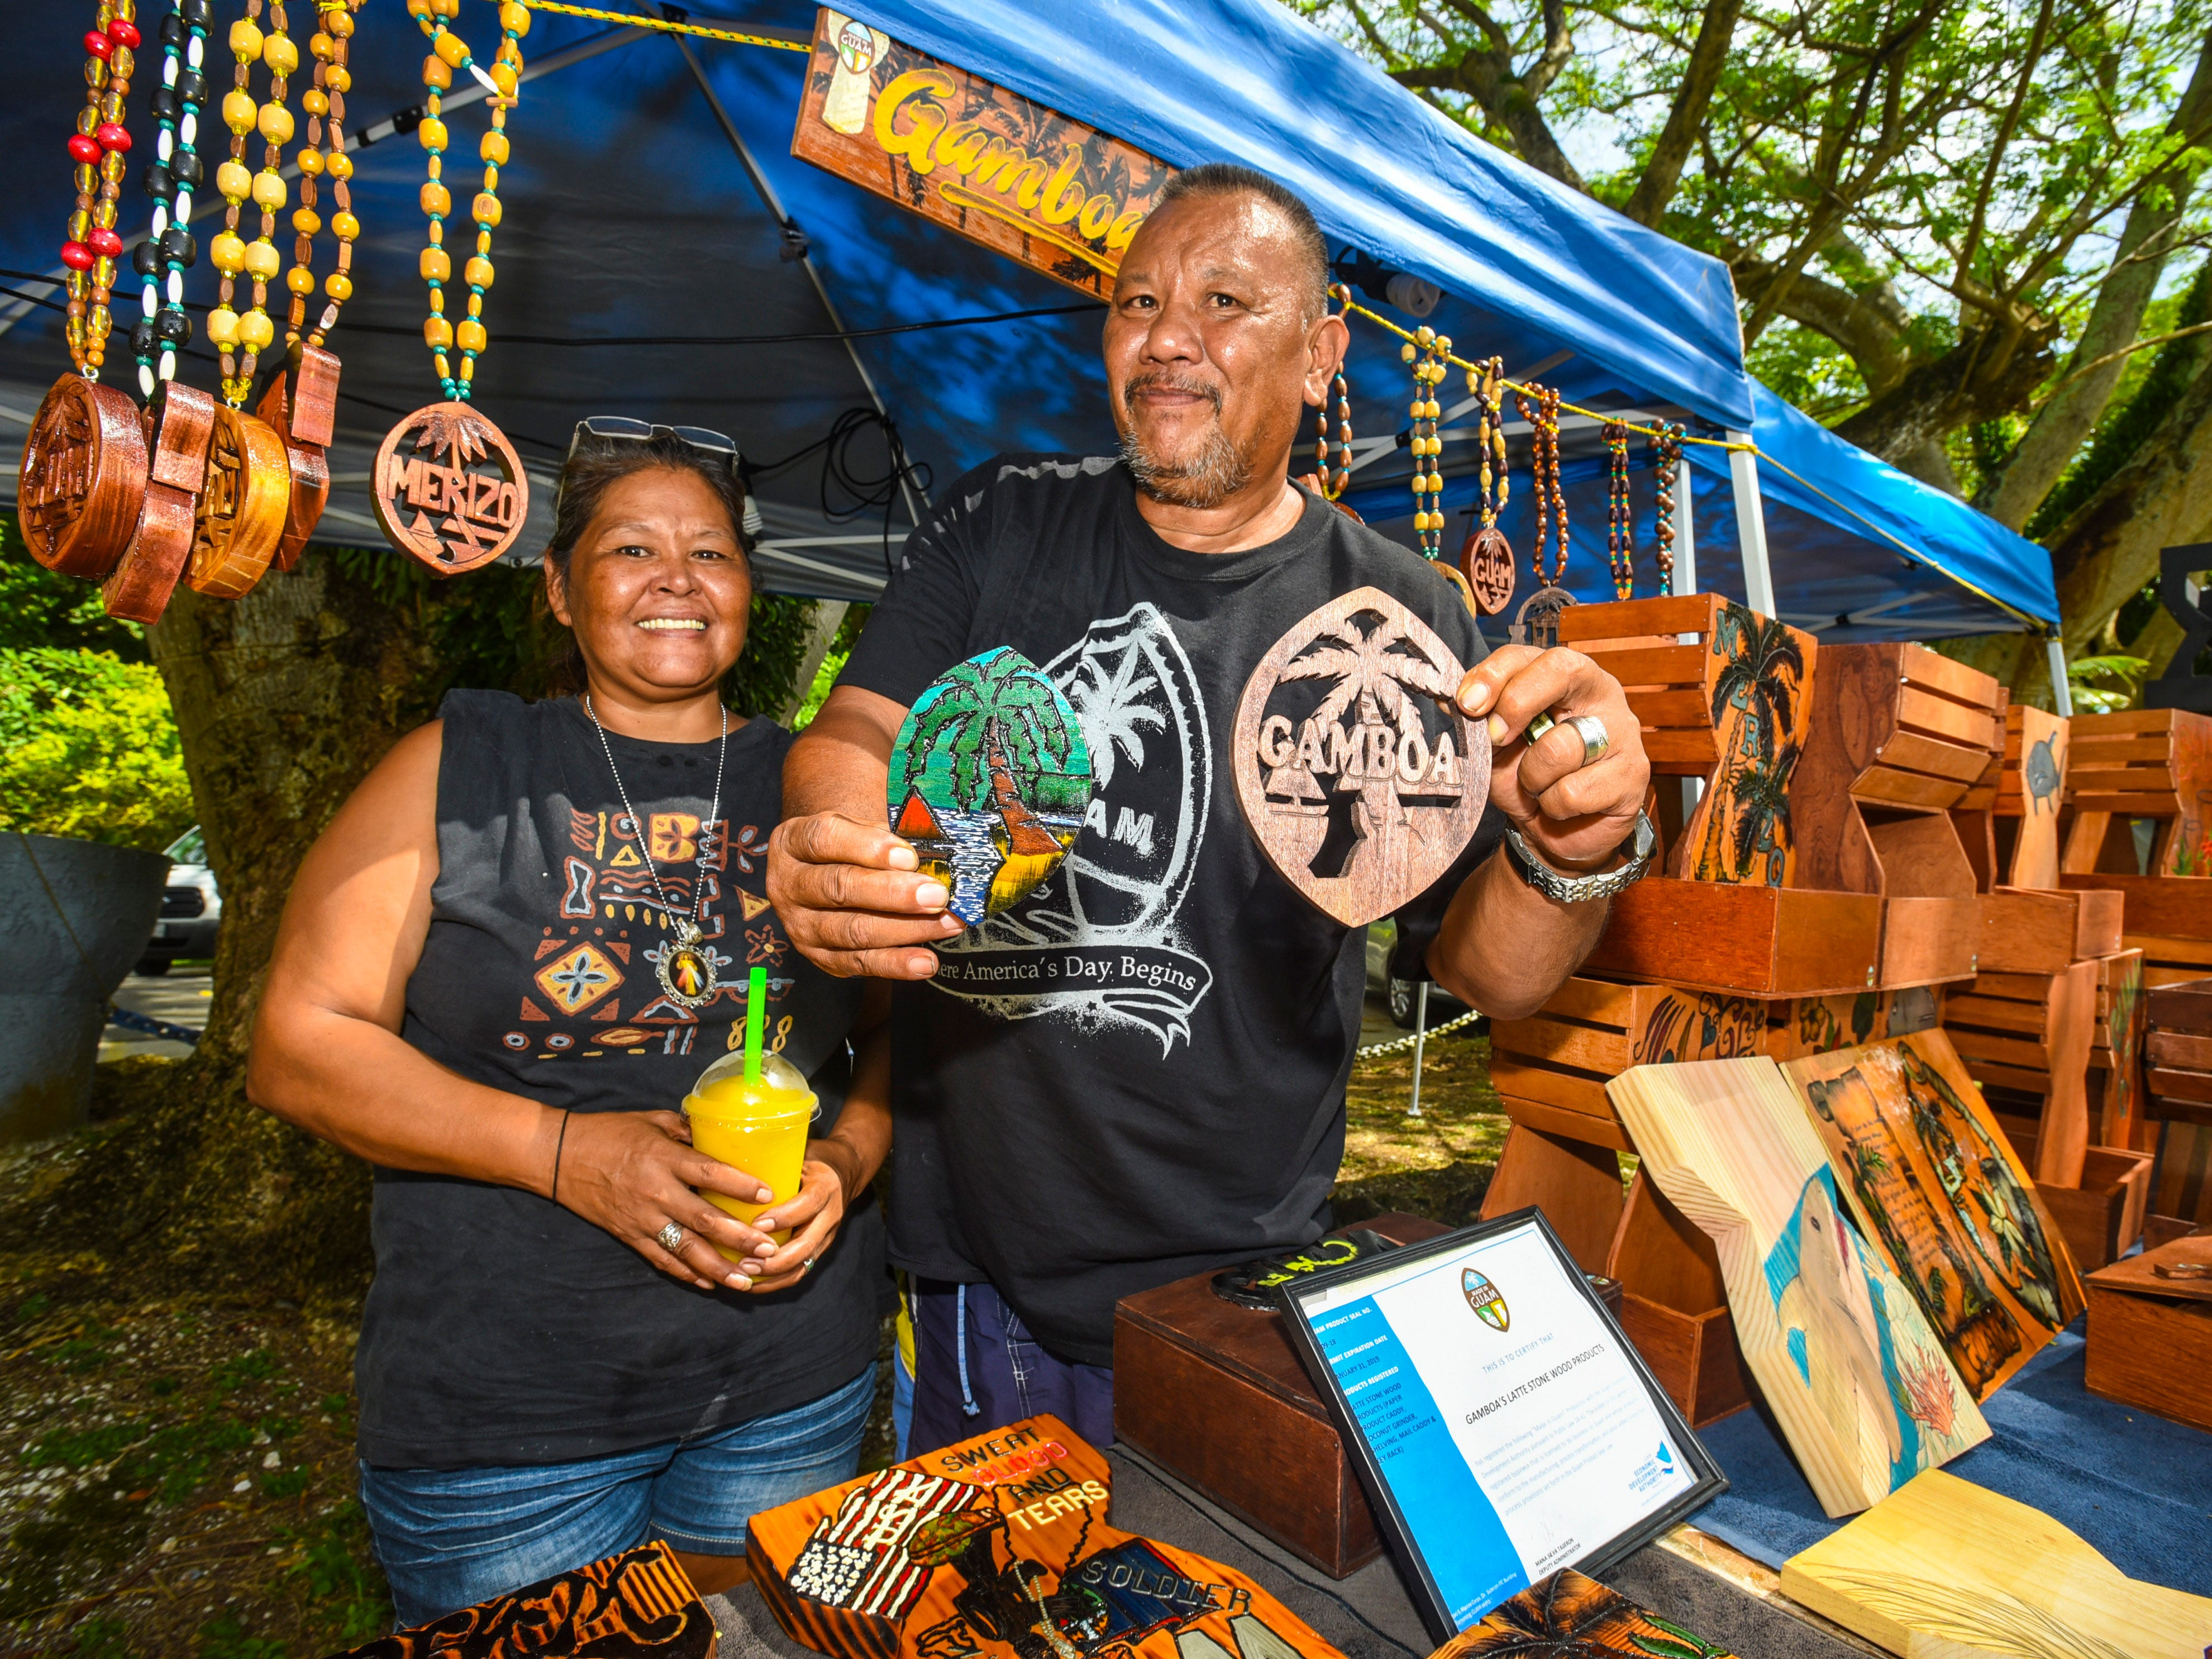 Couple, Francisco Gamboa Jr., right, and Dianne Palomo, of Gamboa's Latte Stone Wood Products, display and stand amongst some of their handicrafts being sold at their vendor stall during the annual Malesso Fiestan Tasi on Saturday, Dec. 1, 2018 at the Malesso Veteran Sons & Daughters Pier Park. The village festival is slated to continue on Sunday, Dec. 2, with plans of a spearfishing competition, personal watercraft racing, live entertainment and an evening fireworks show being held.